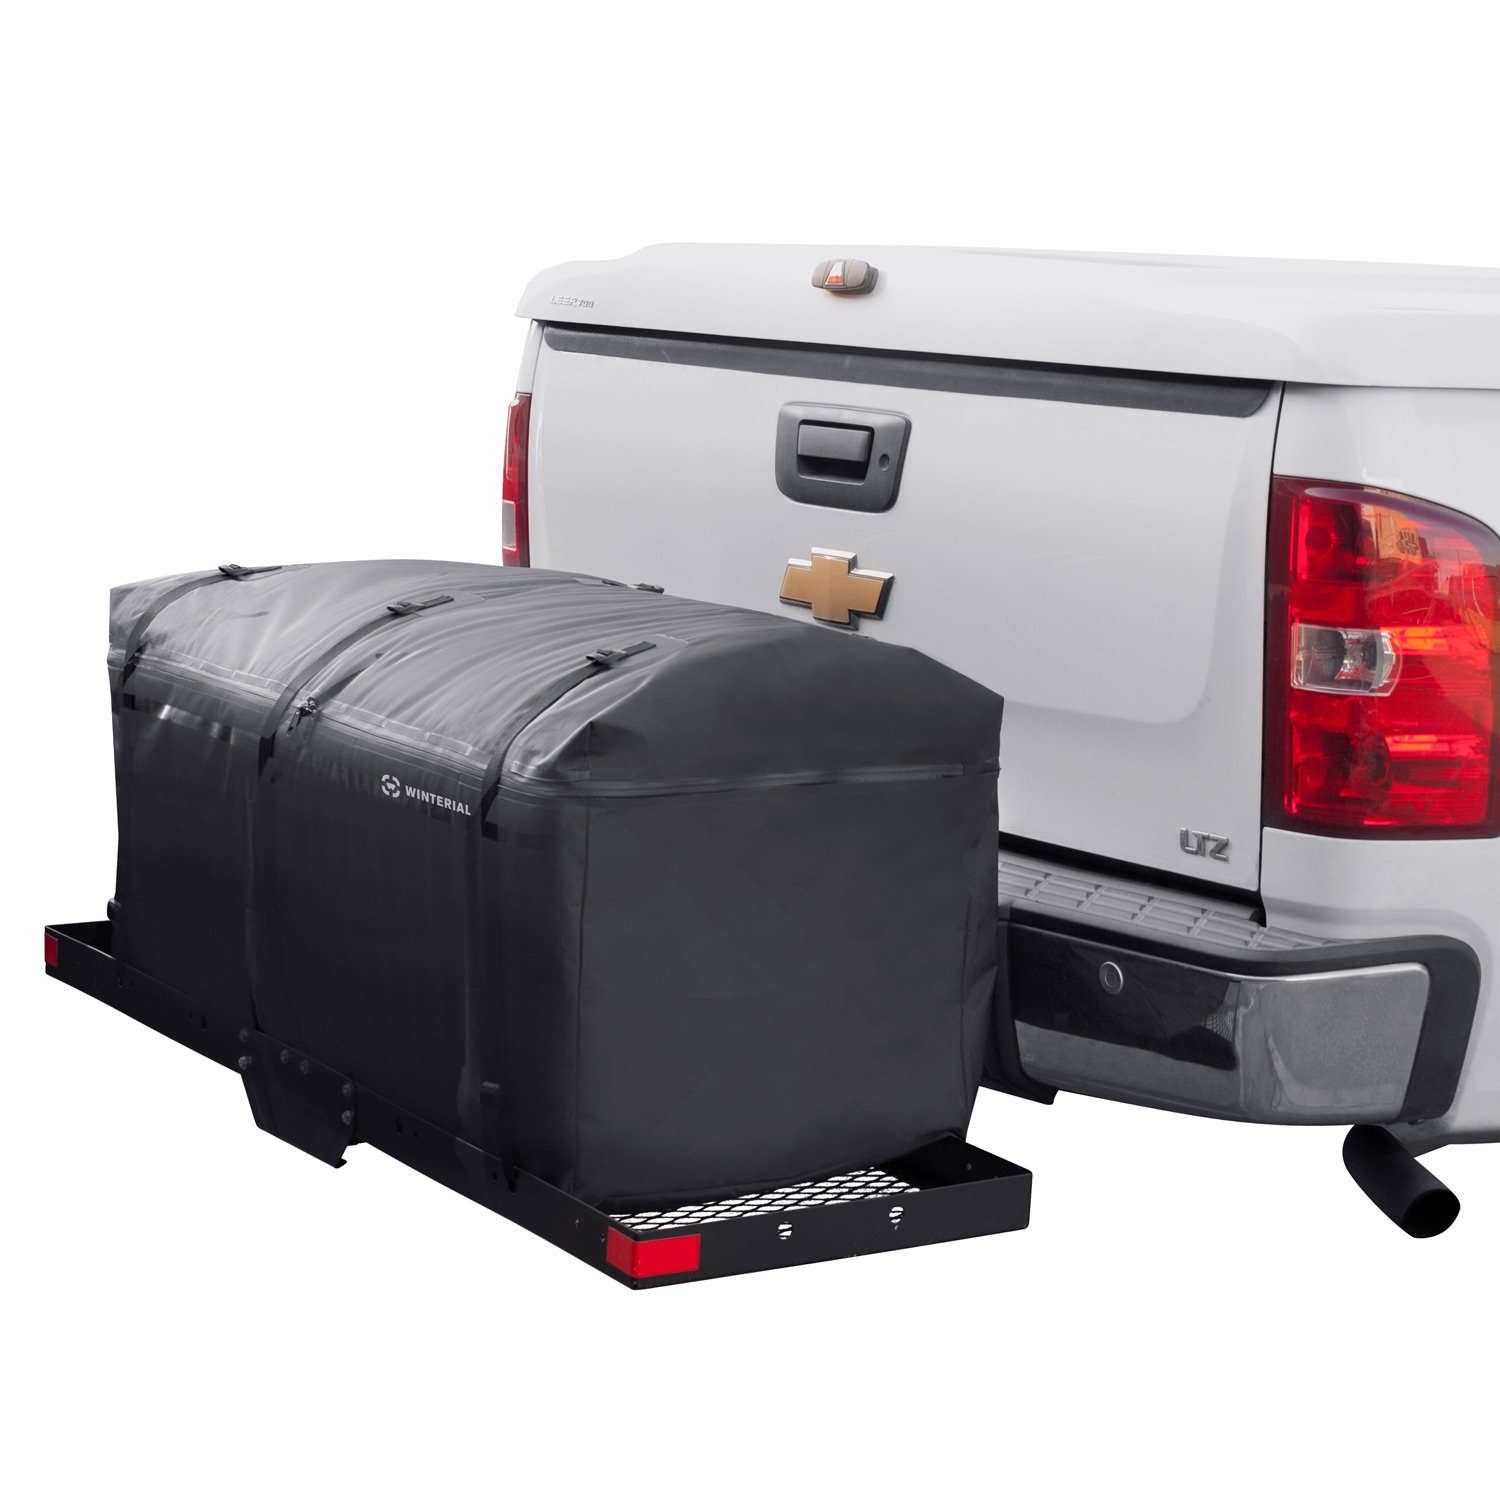 Winterial Hitch Cargo Carrier Bag. Expandable, Road Trip Water Resistant, Weatherproof, Cargo Bag Rain, Snow, Dirt